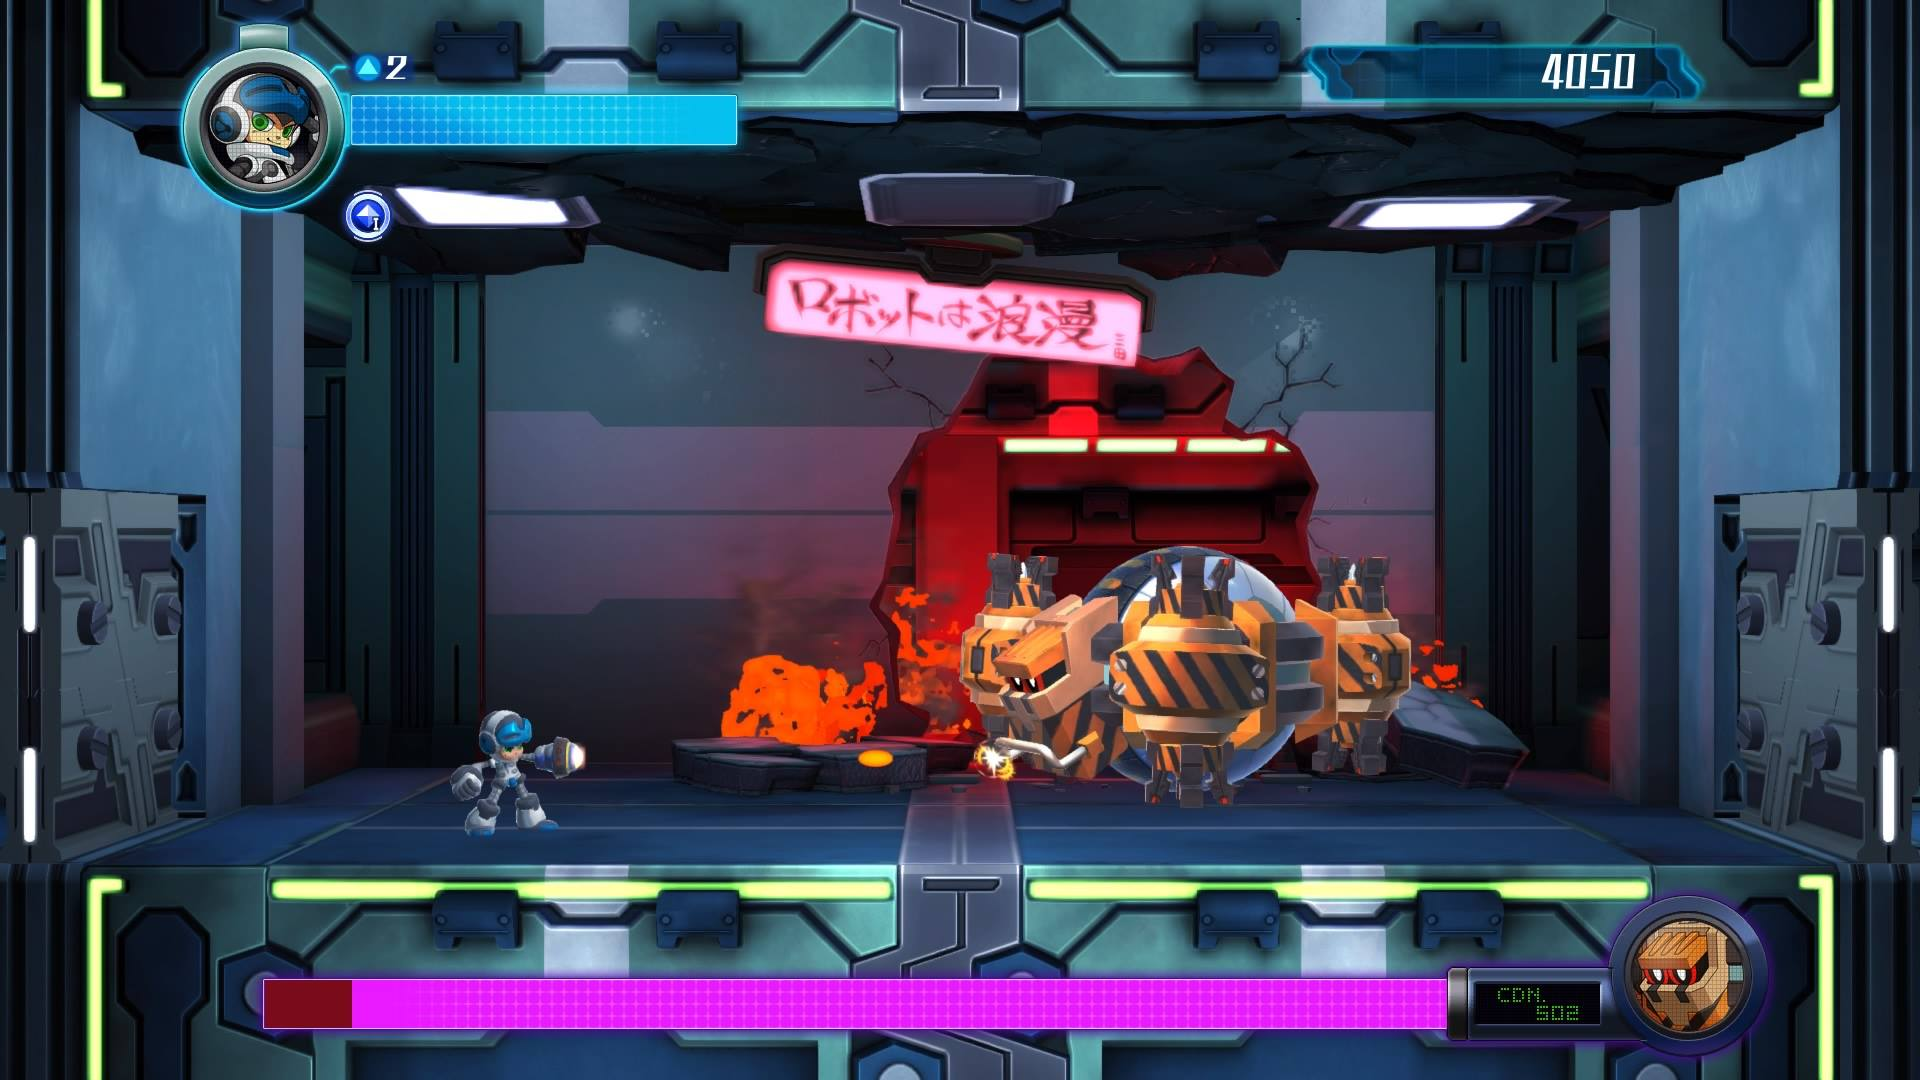 Screenshot from Mighty No. 9 on the PlayStation 4.